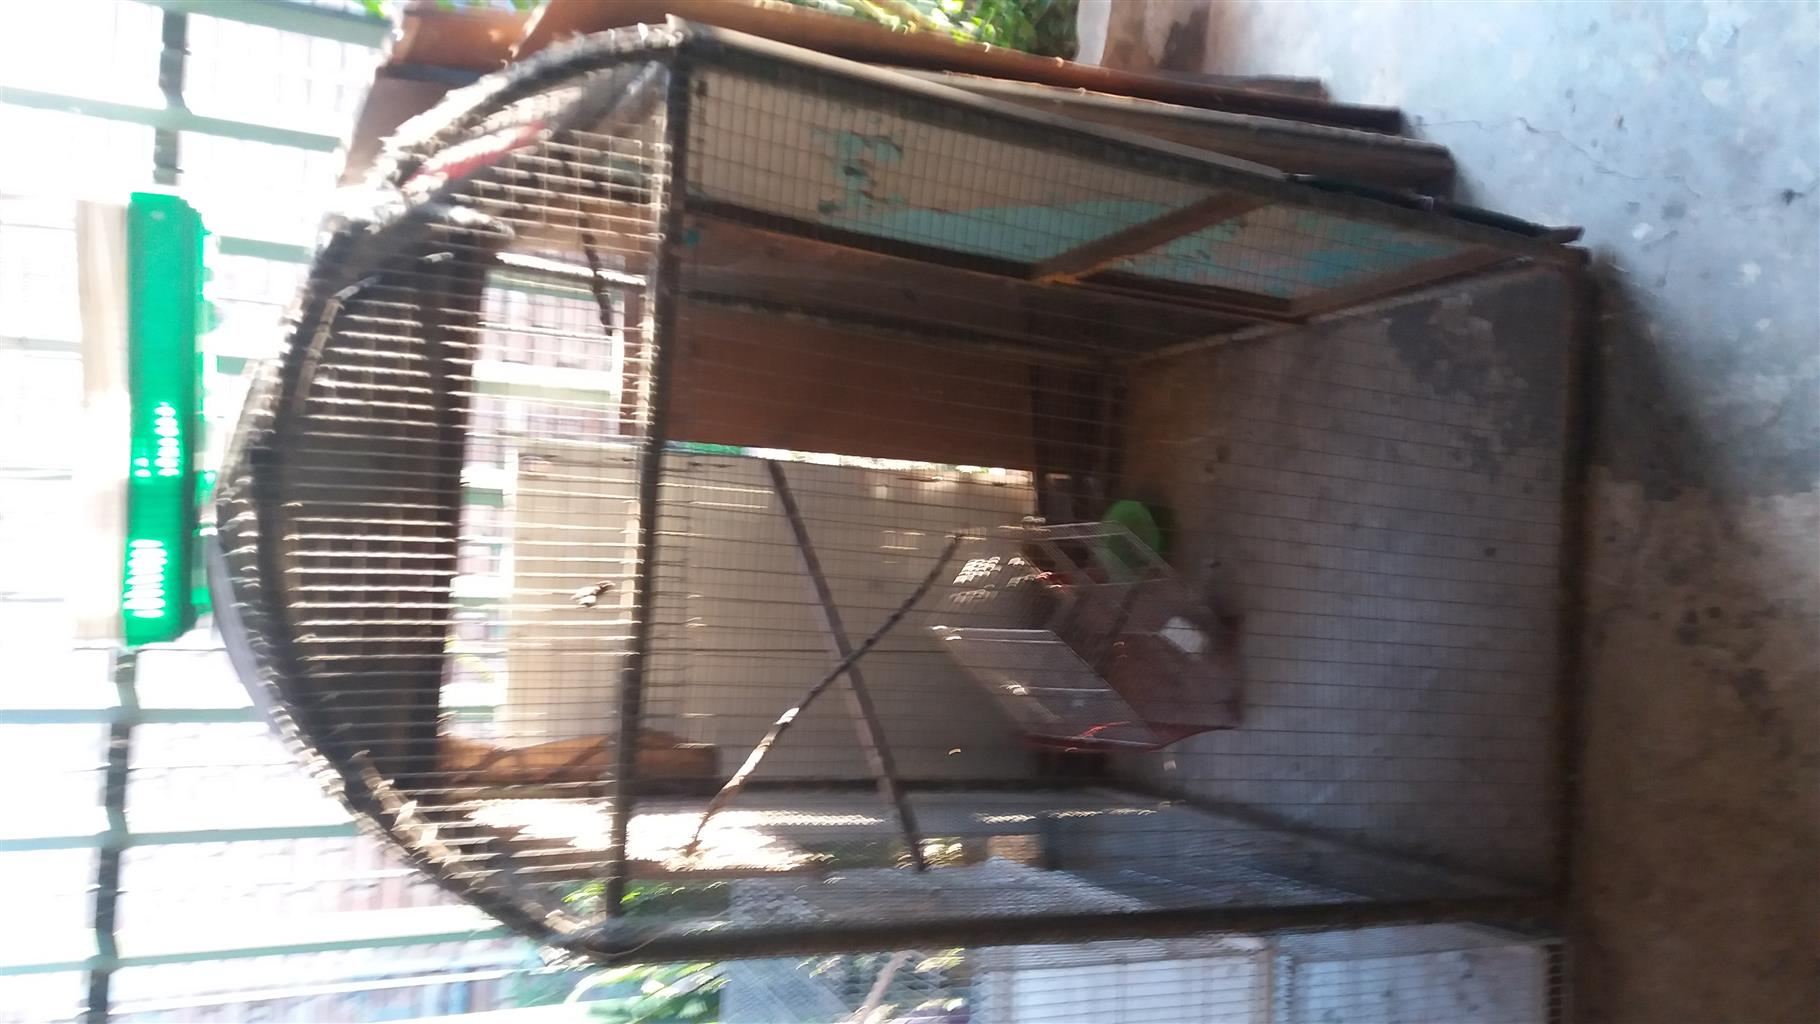 Big Cage1.4mx 1mx1mx1mx1m for paret or finches